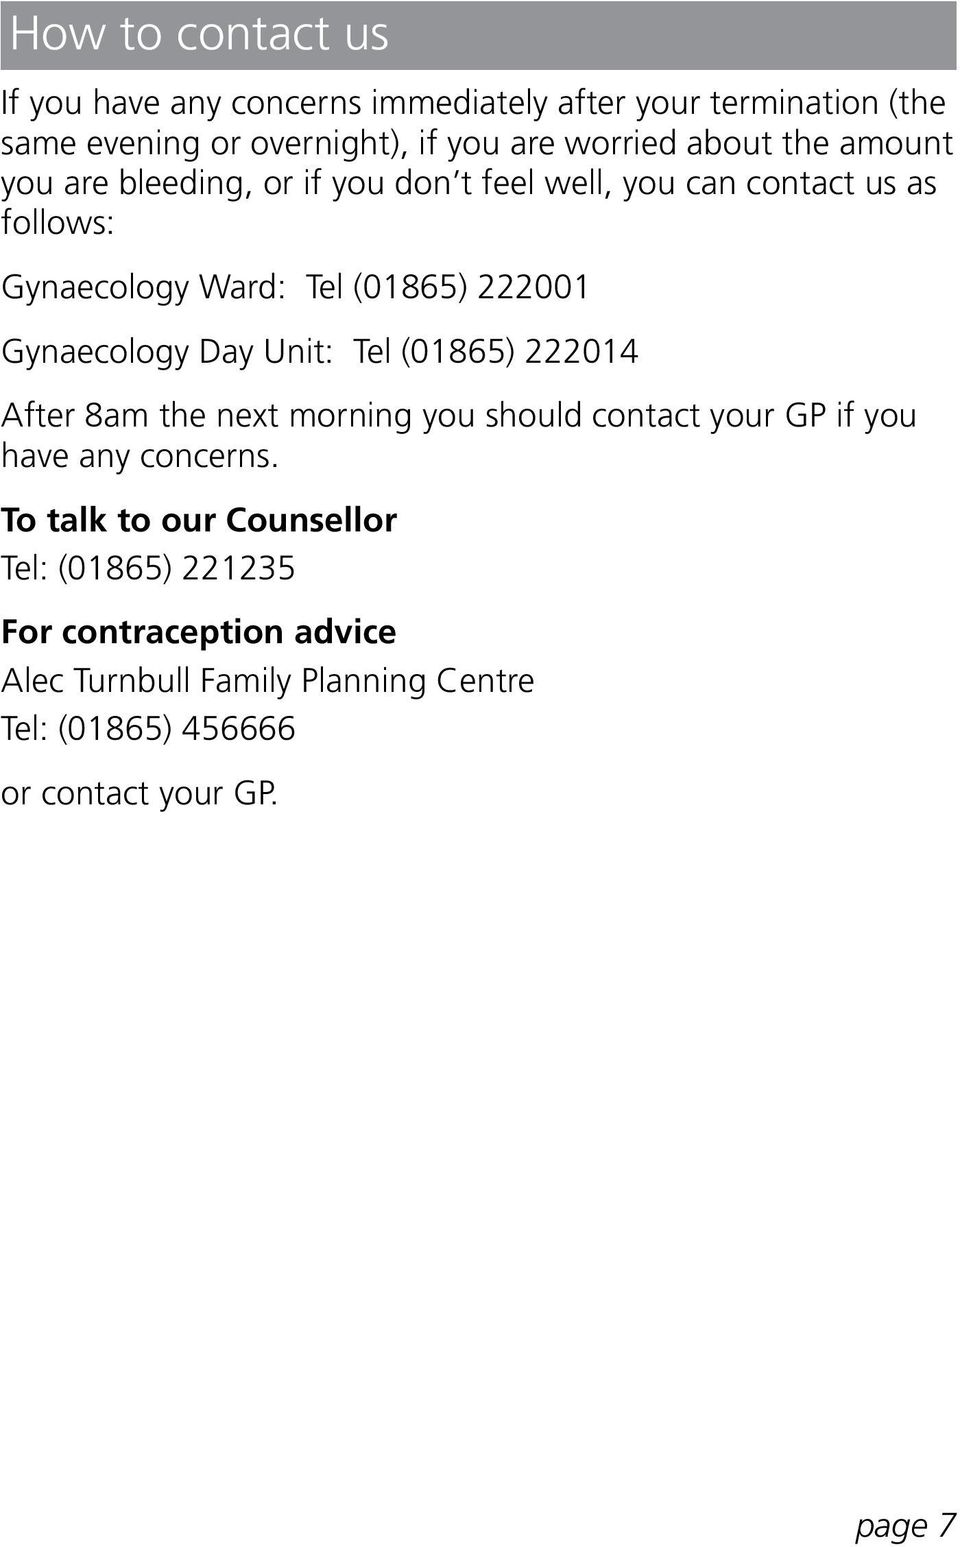 Gynaecology Day Unit: Tel (01865) 222014 After 8am the next morning you should contact your GP if you have any concerns.